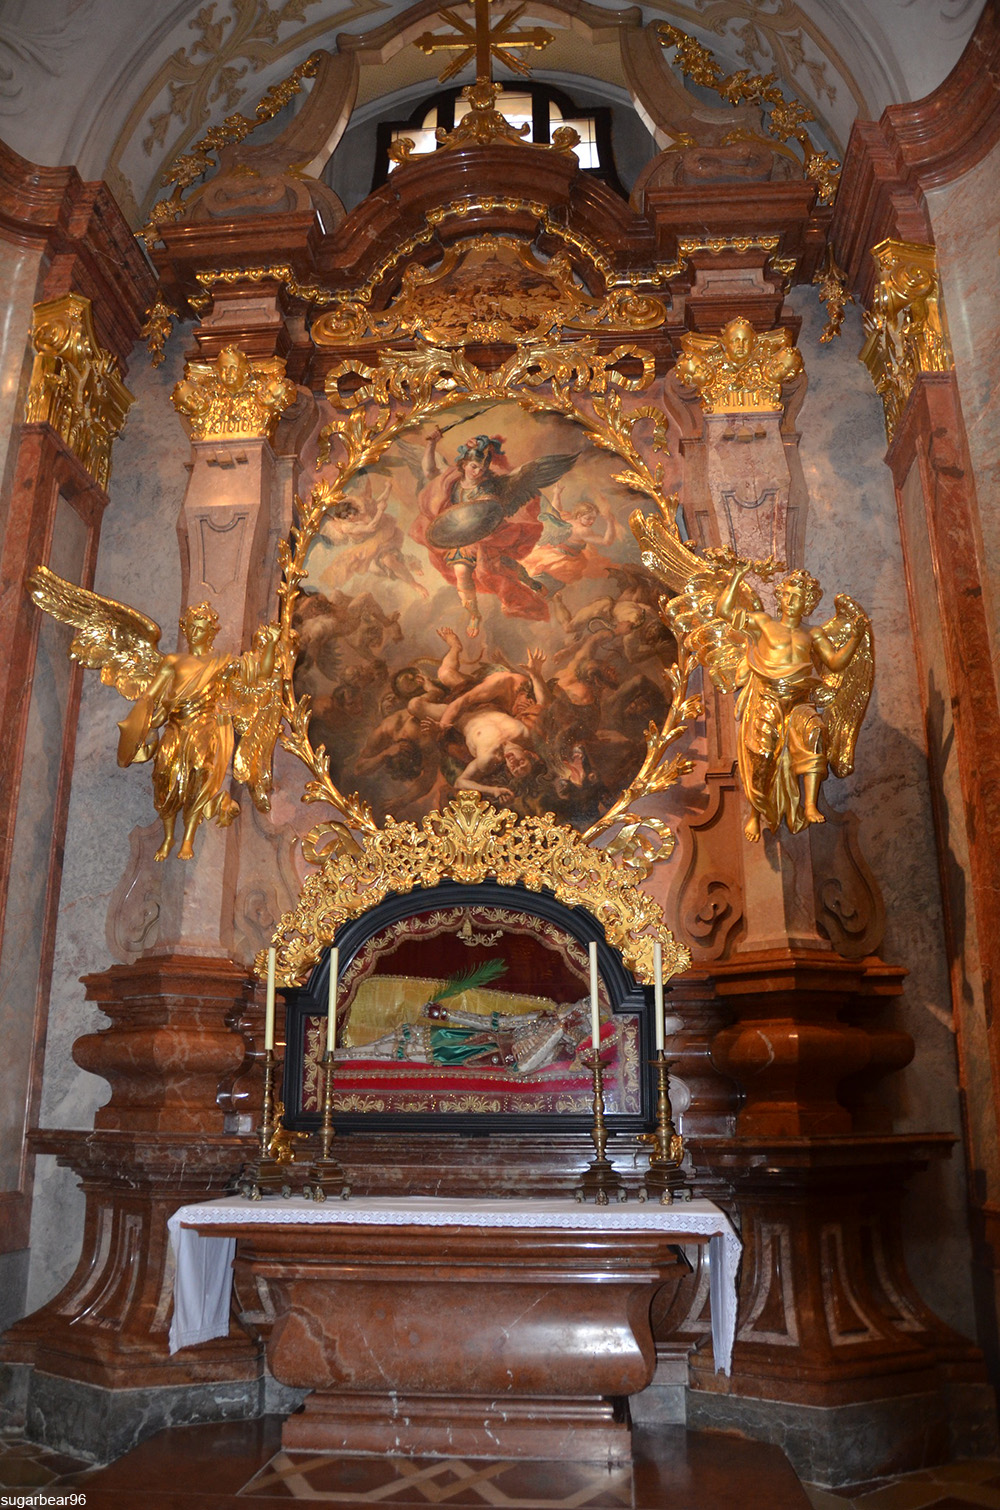 altar to Saint Coloman at Melk Abbey